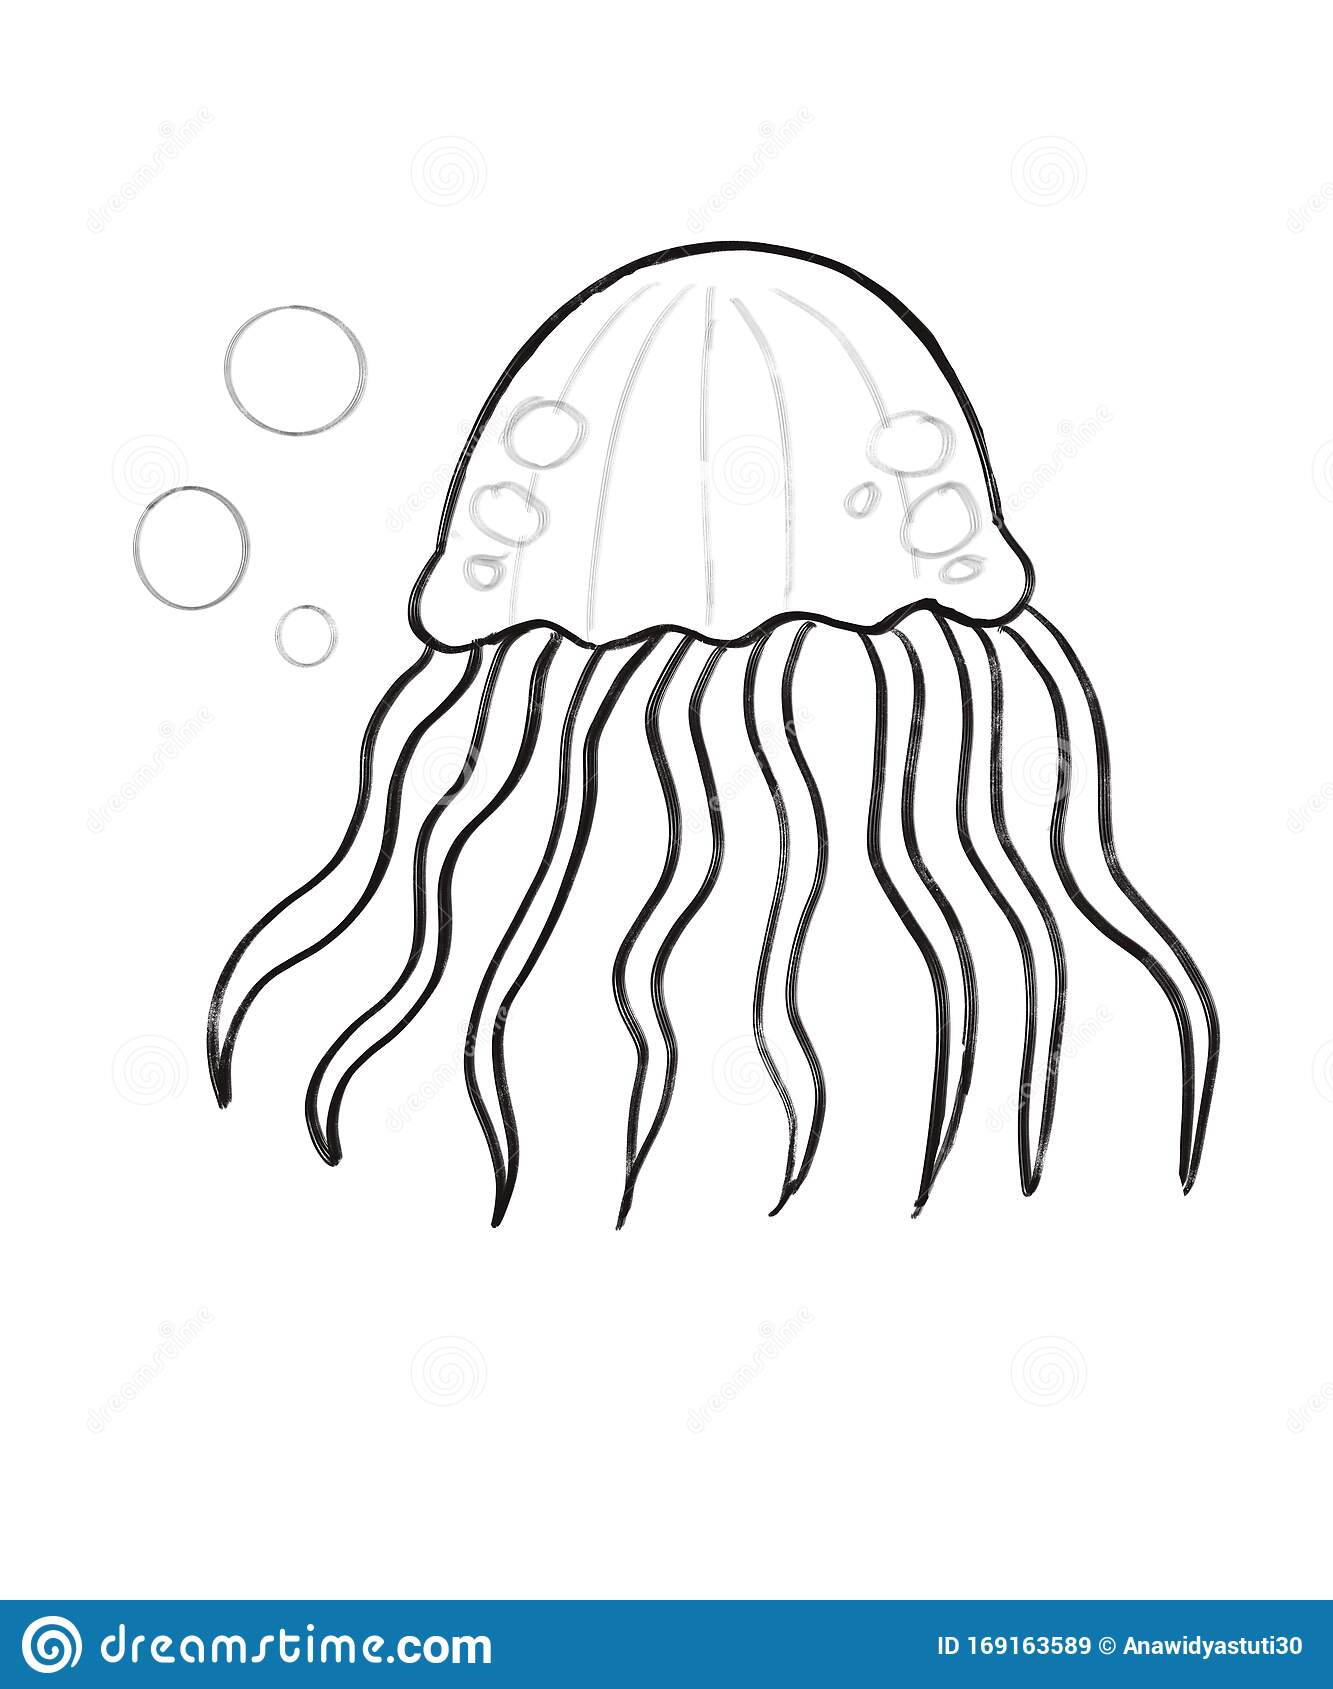 Ilustration Drawing Of Jelly Fish Coloring For Children